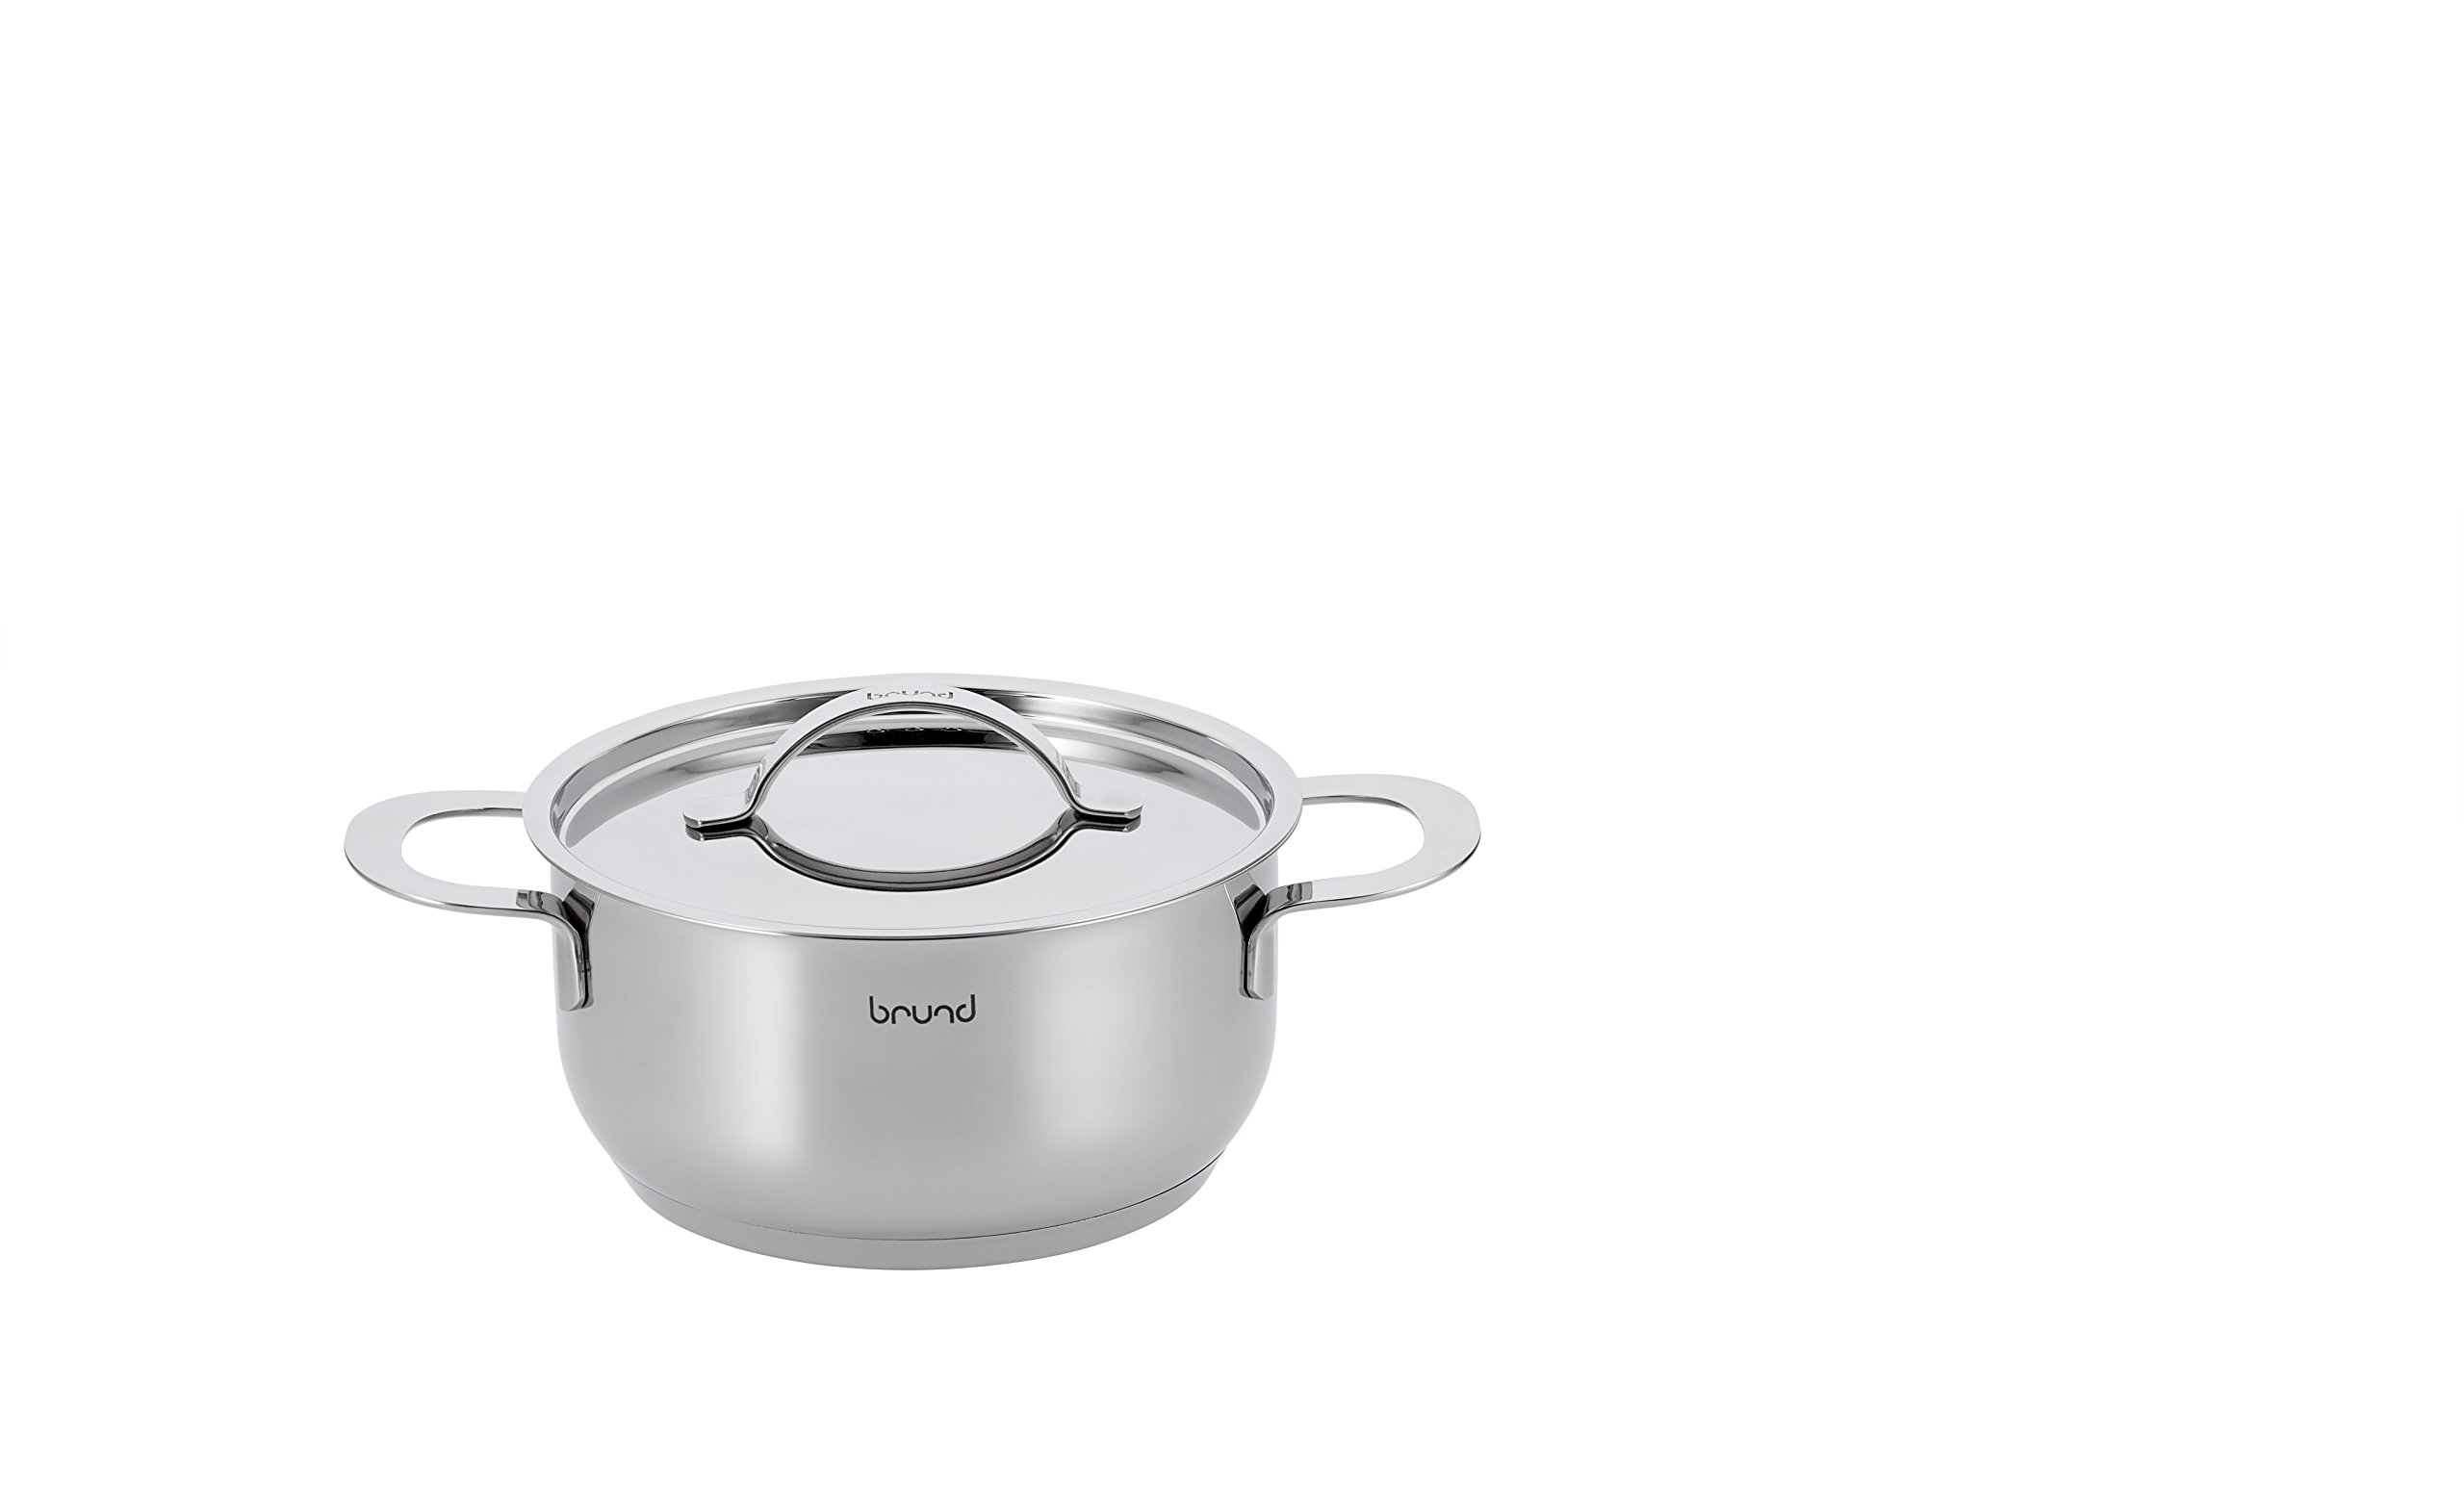 Brund Energy Dutch Oven, 2 Quart, Stainless Steel